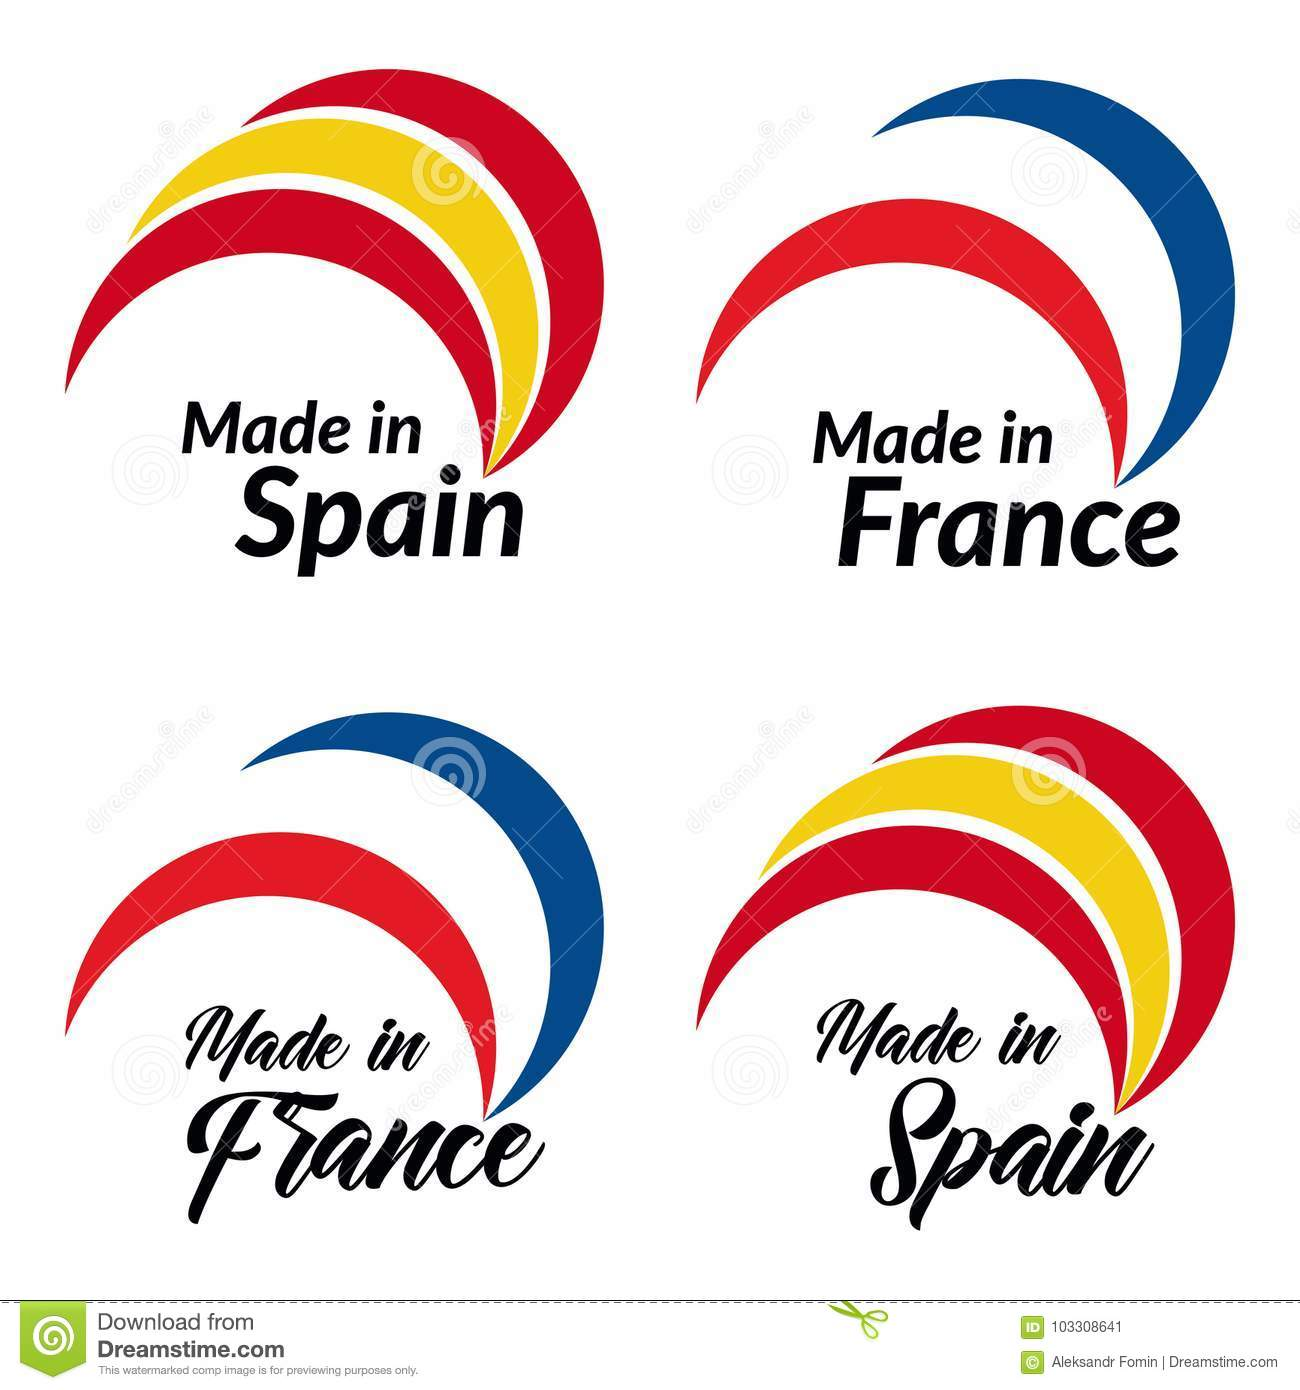 Simple Logos Made In Spain Made In France Vector Logos With - Is spain in france